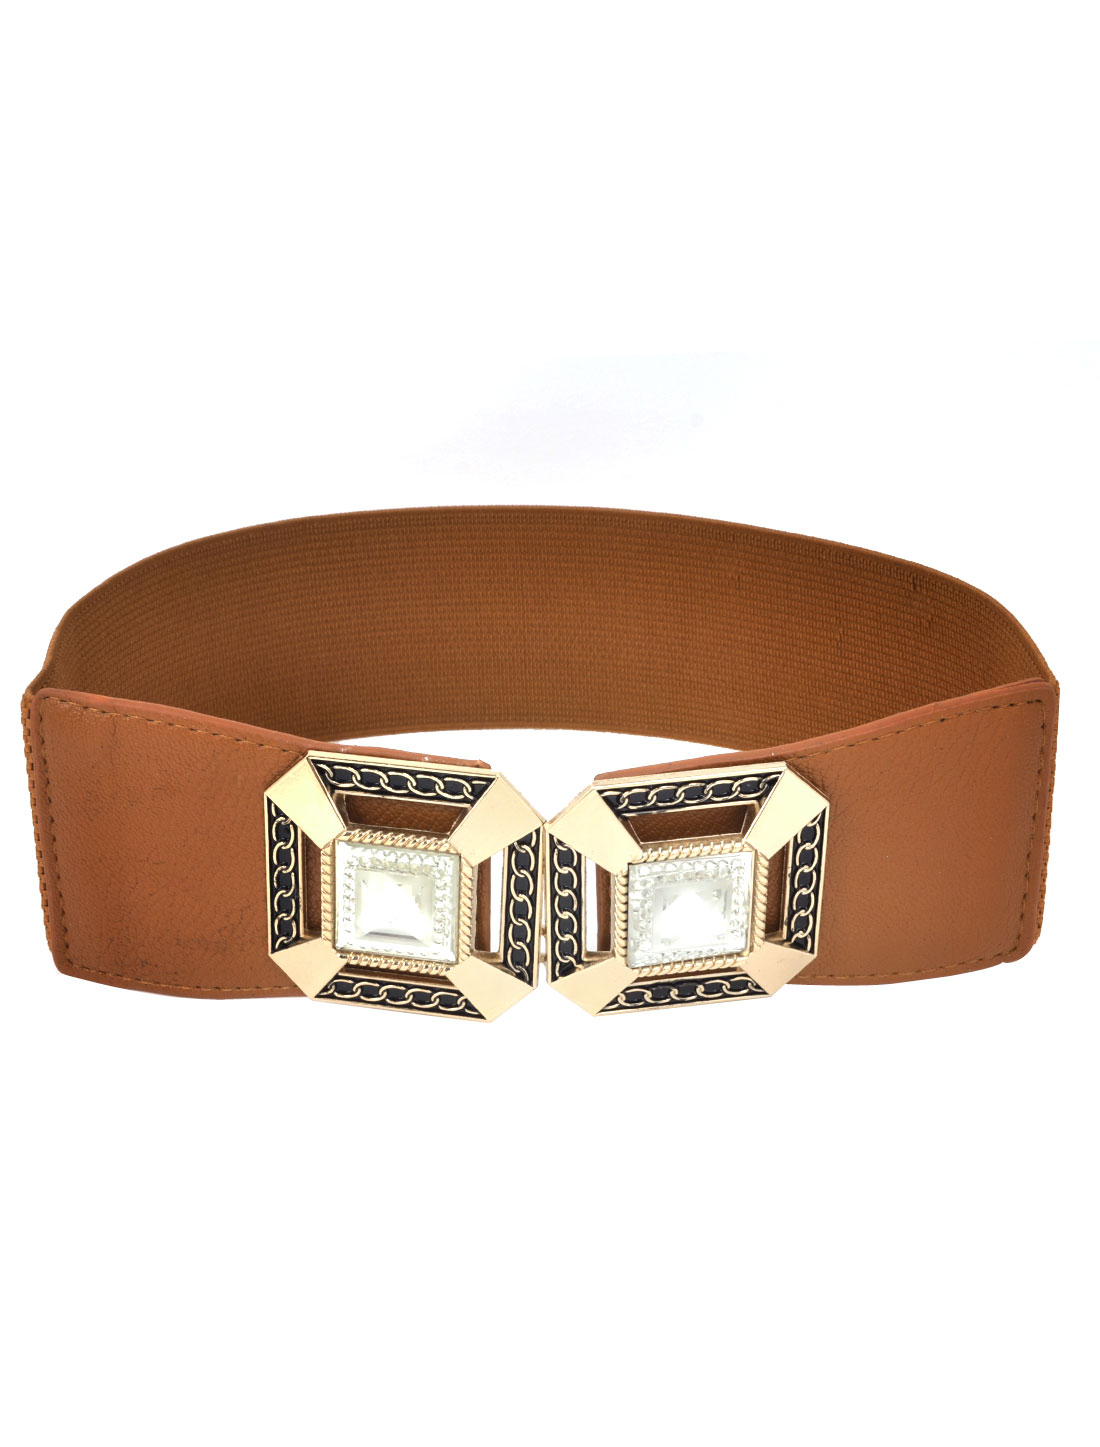 Gold Tone Metal Square Hook Buckle Stretchy Waistband Belt Brown for Ladies